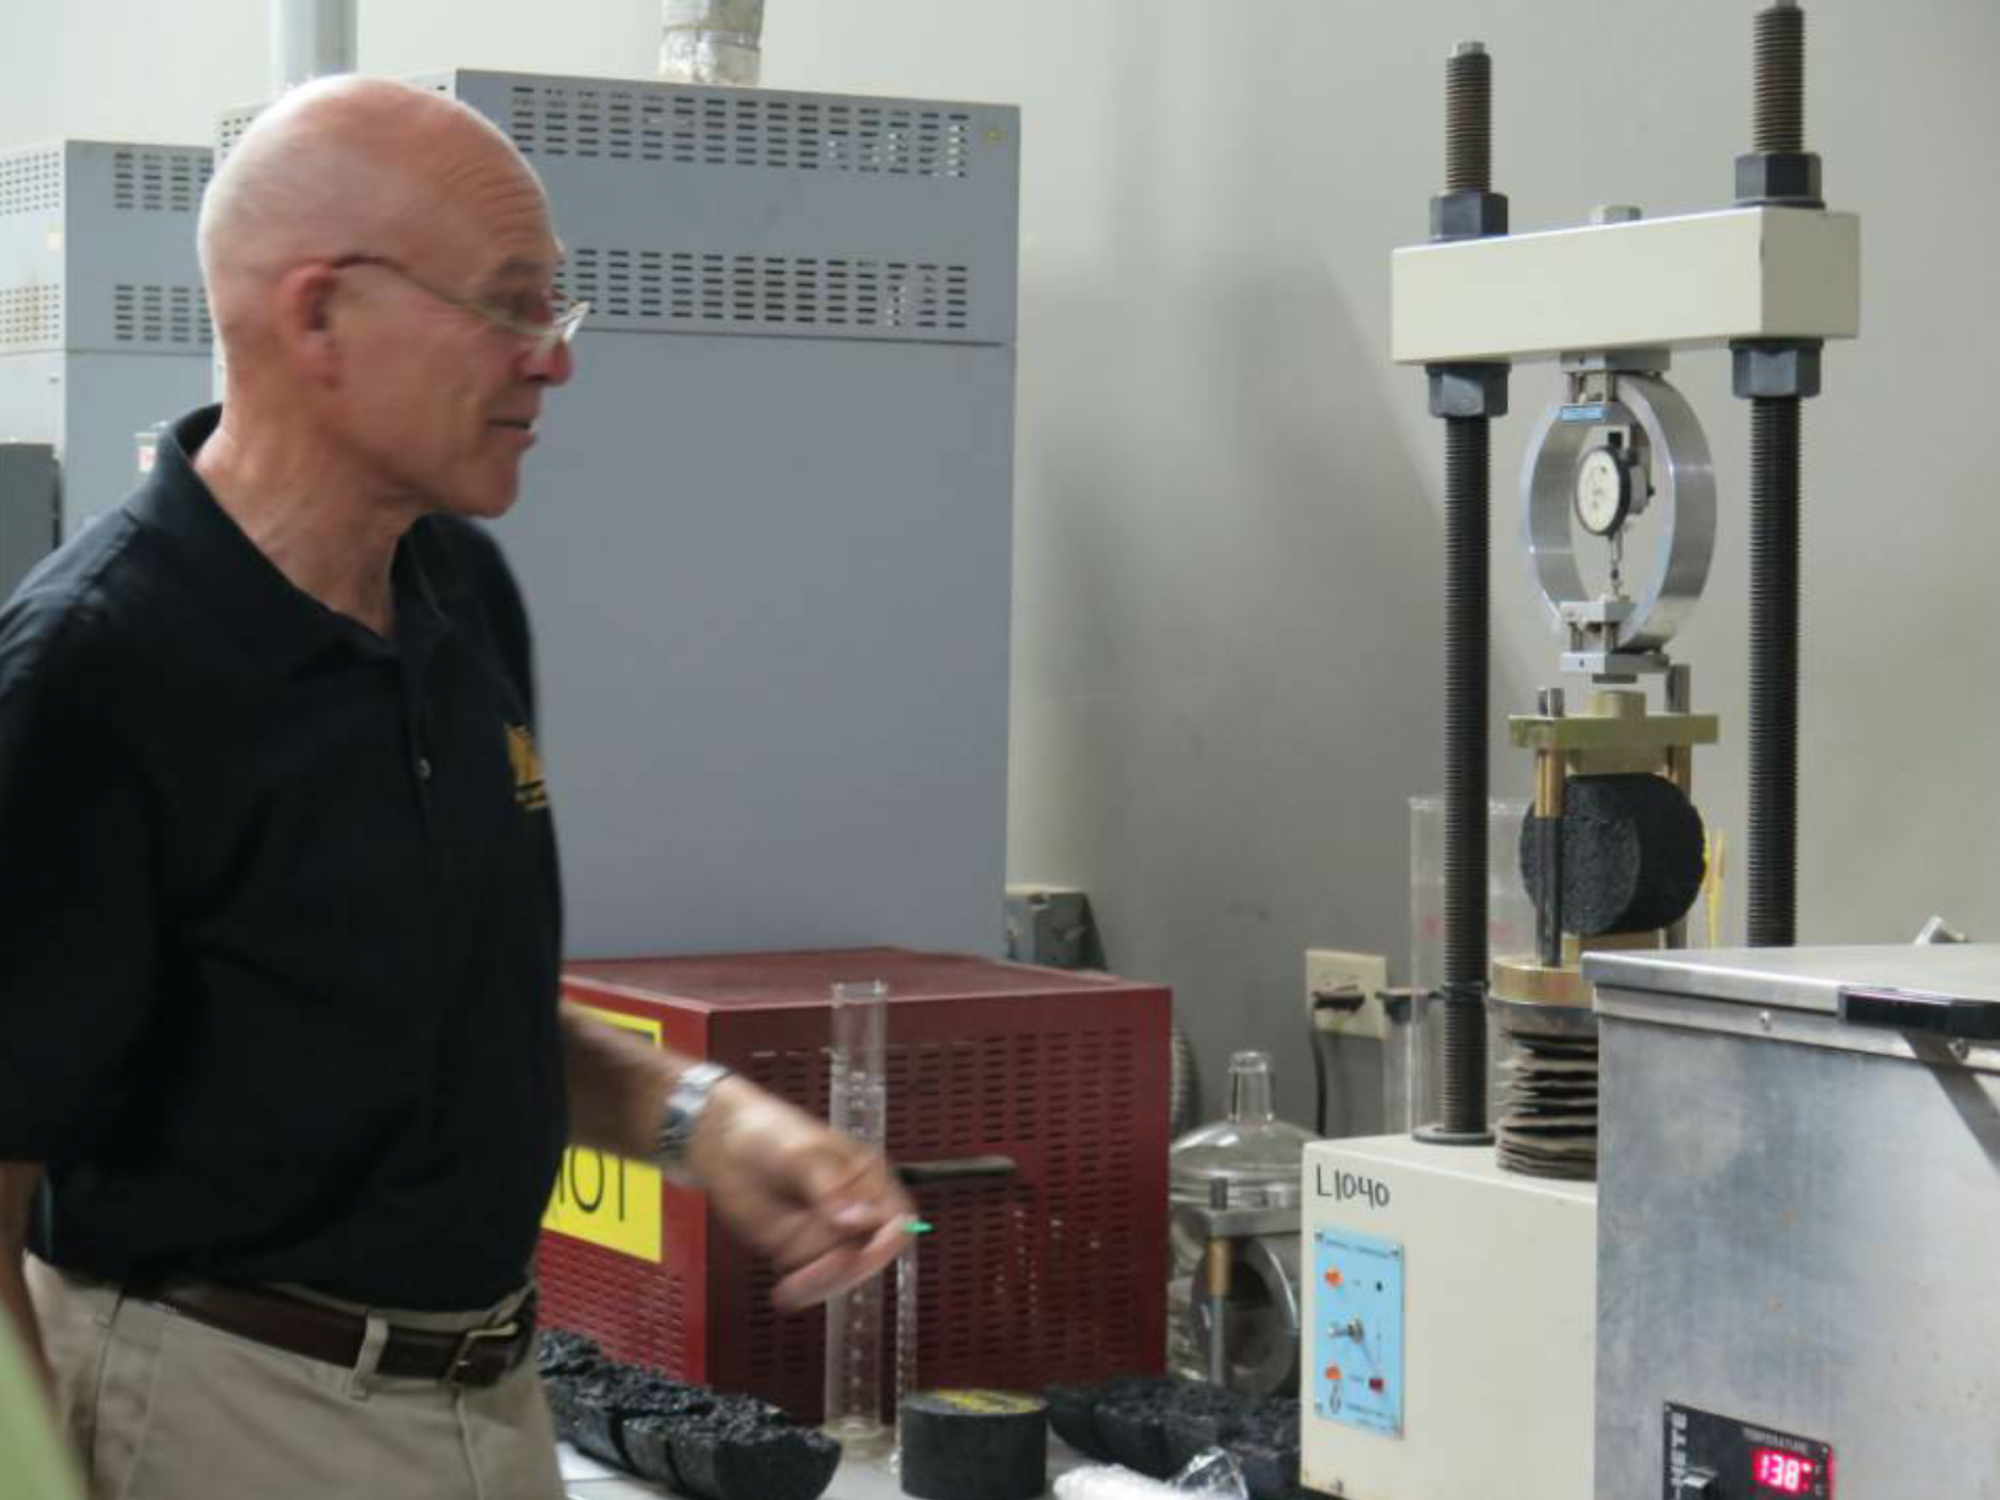 Bob Humer from the Asphalt Institute conducted a lab session during mix design technology training in Hawaii.